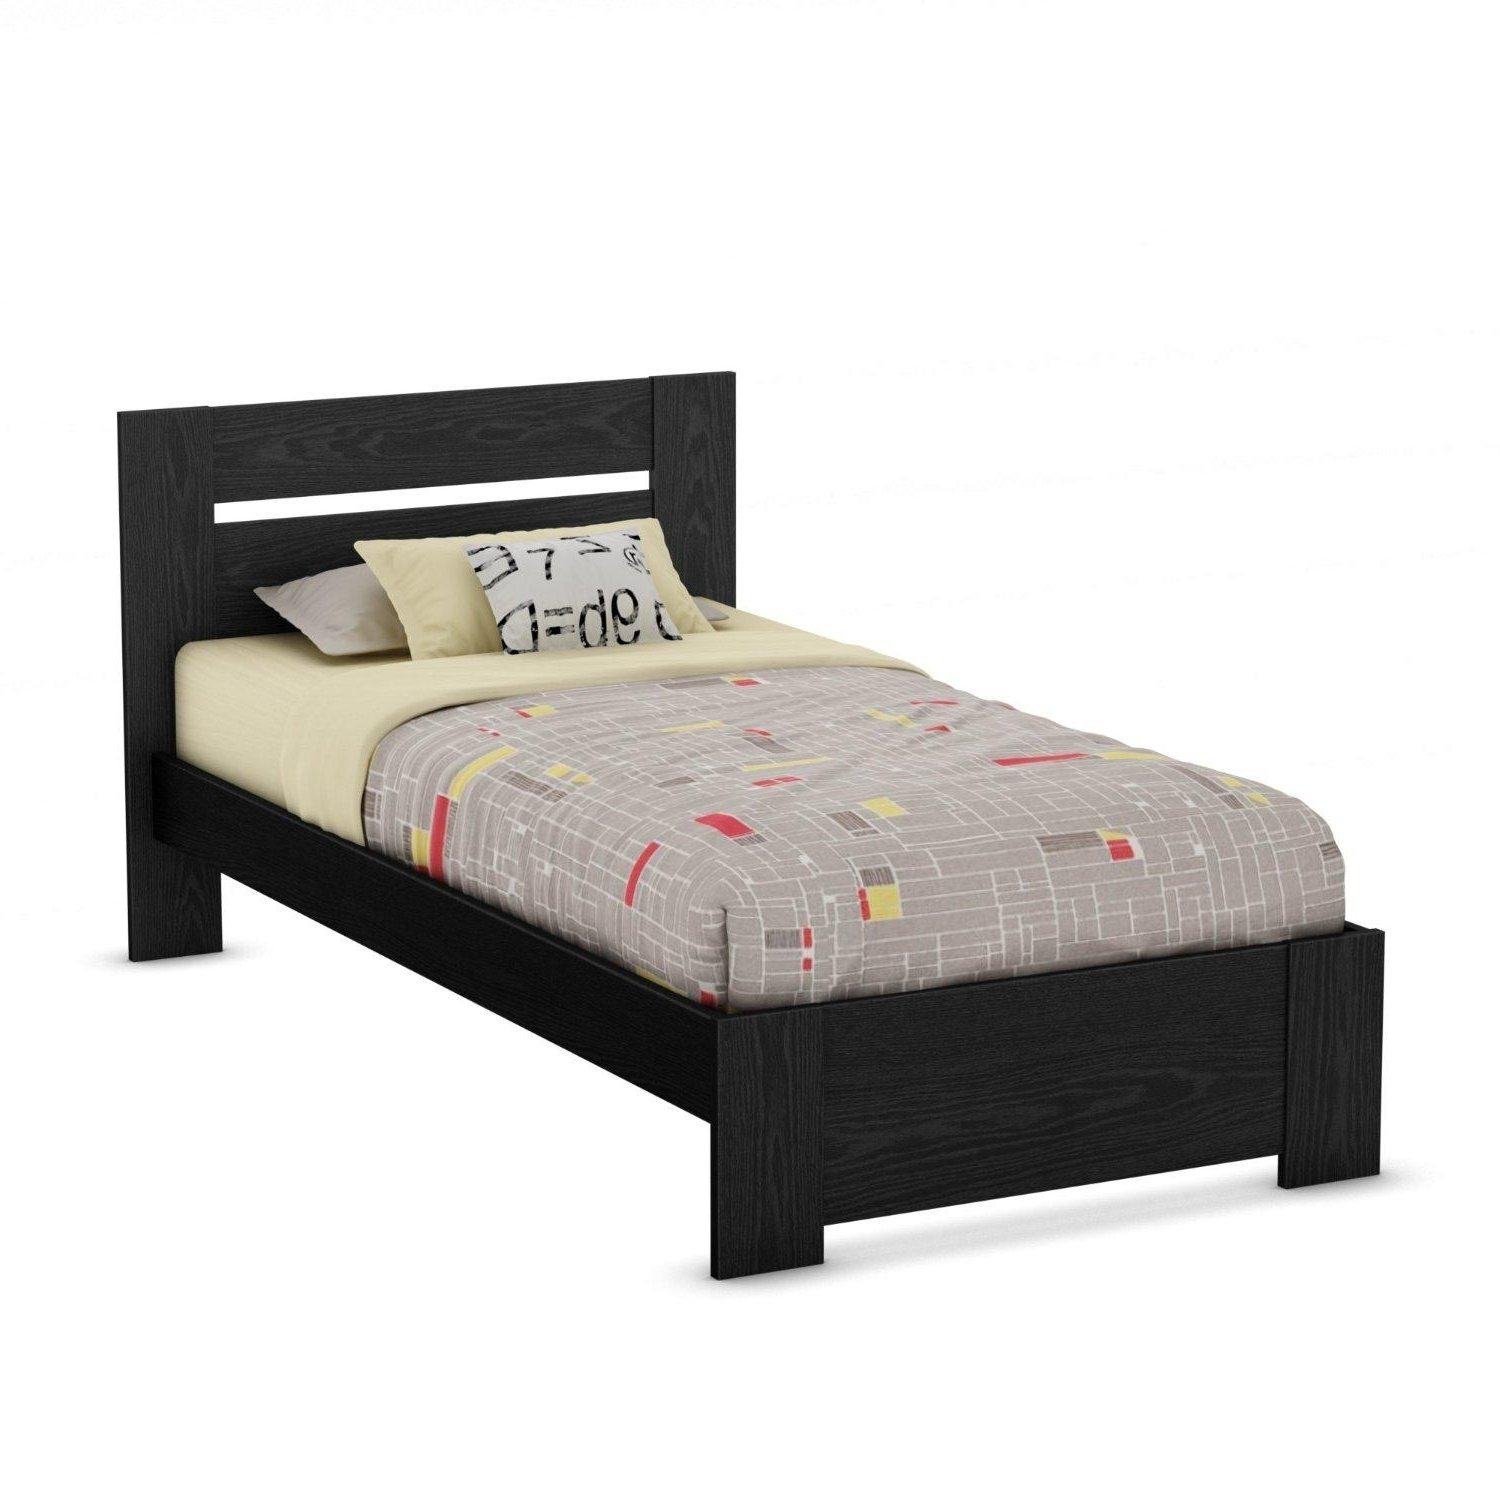 twin size bed rustic wooden frame that is designed for the use of one person with a strong foot. Black Bedroom Furniture Sets. Home Design Ideas